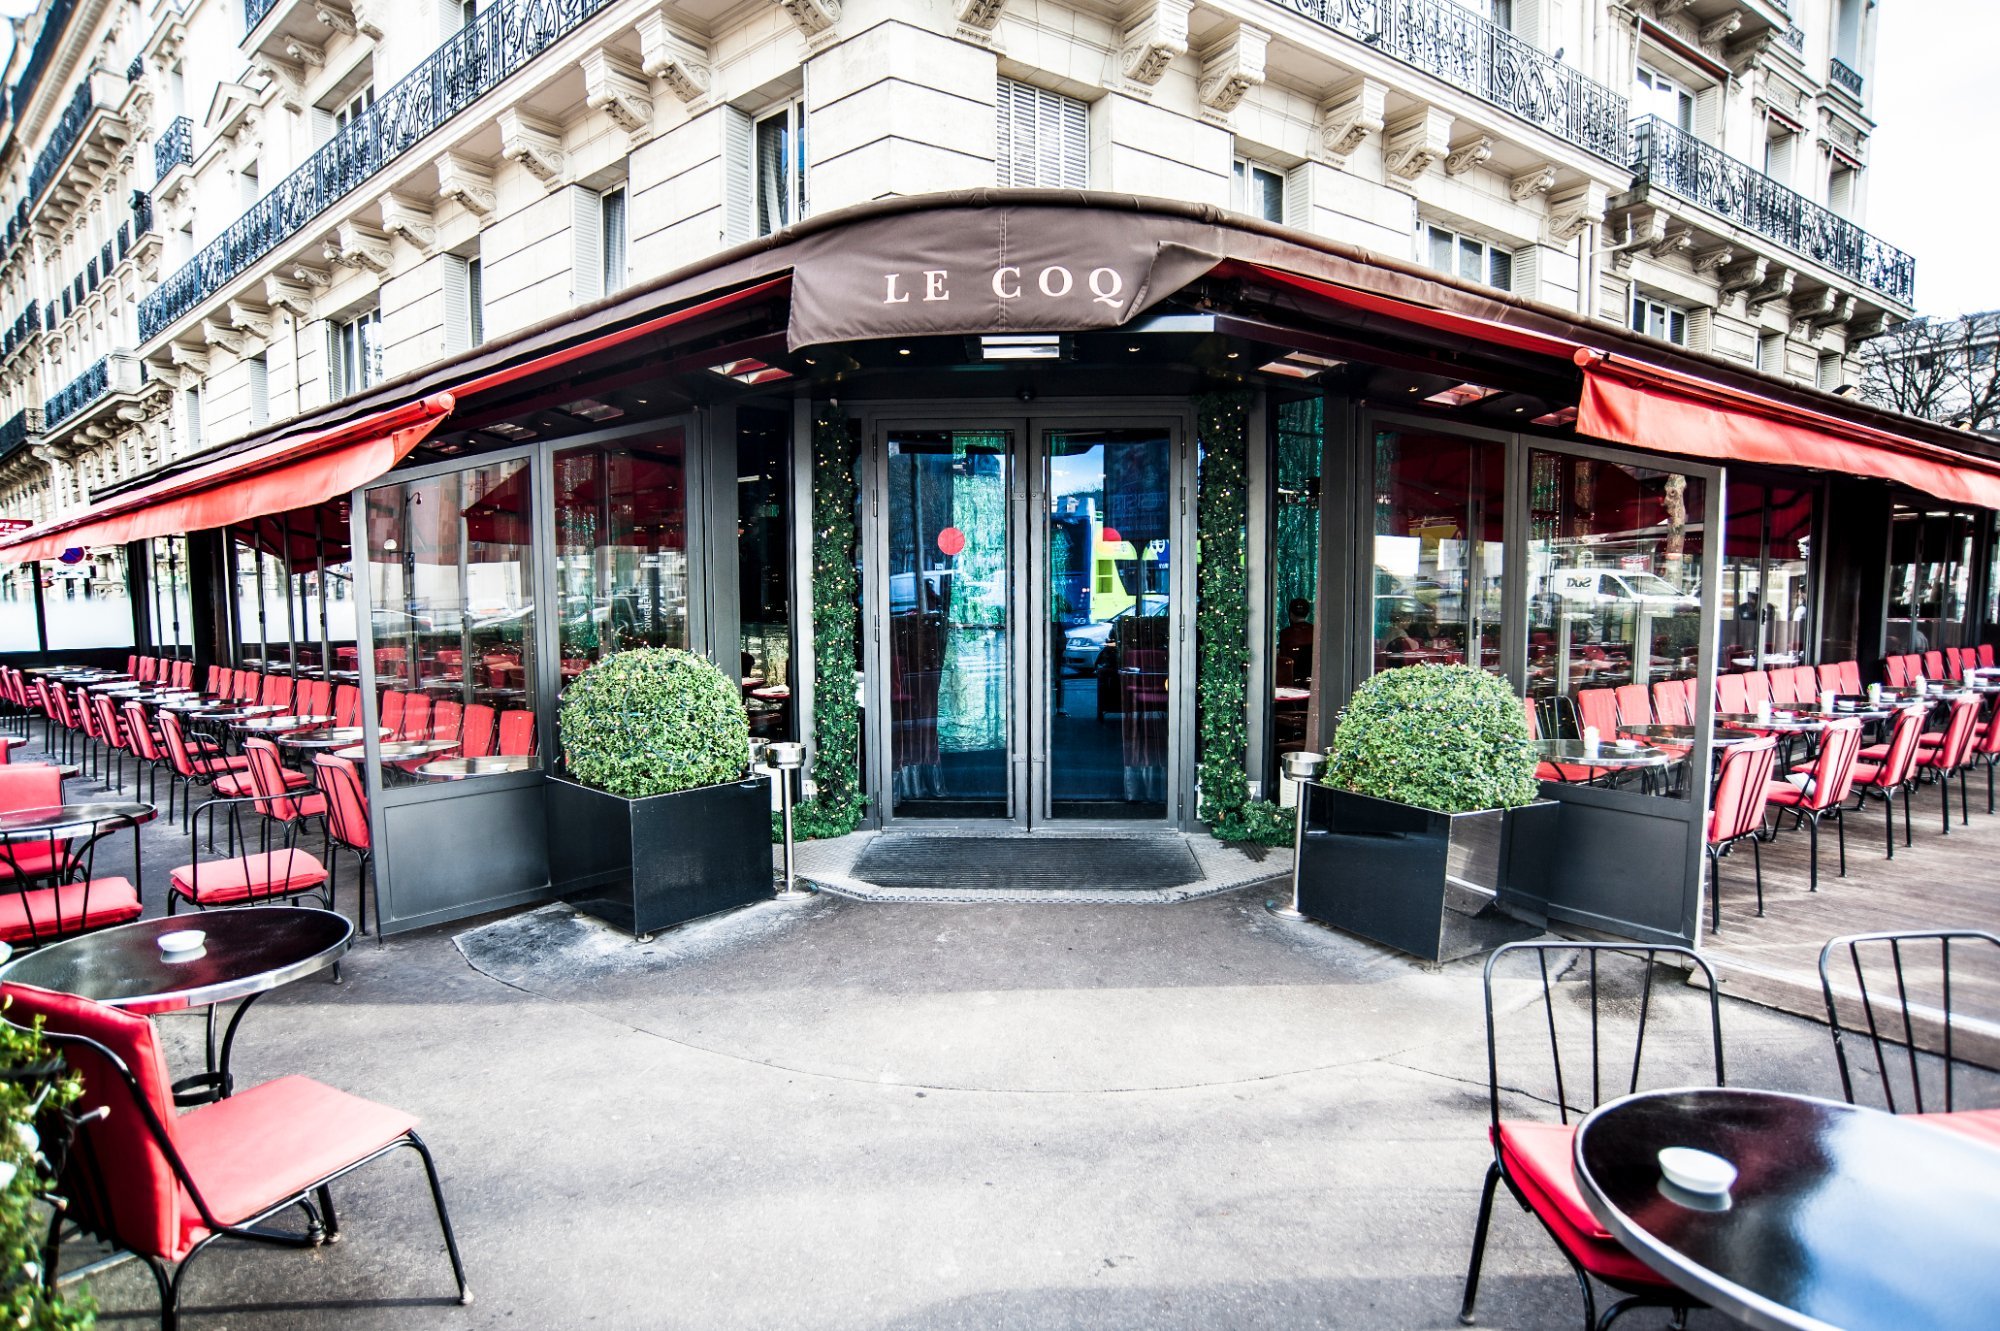 Outdoor cafe in paris with tower in background - All Photos 144